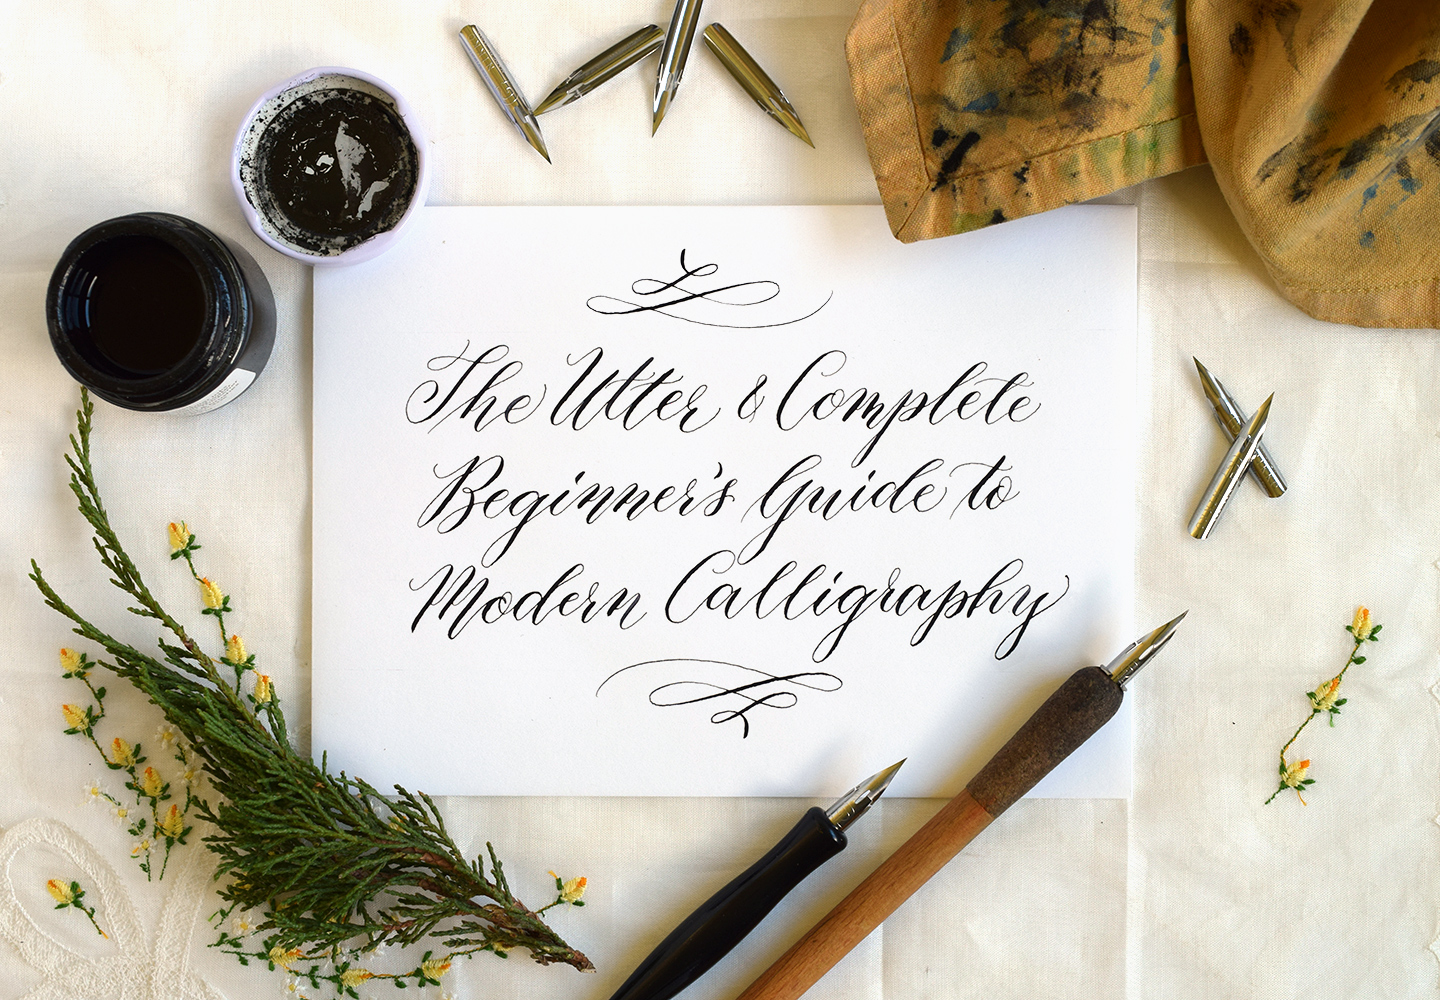 Beginner s guide to modern calligraphy the postman s